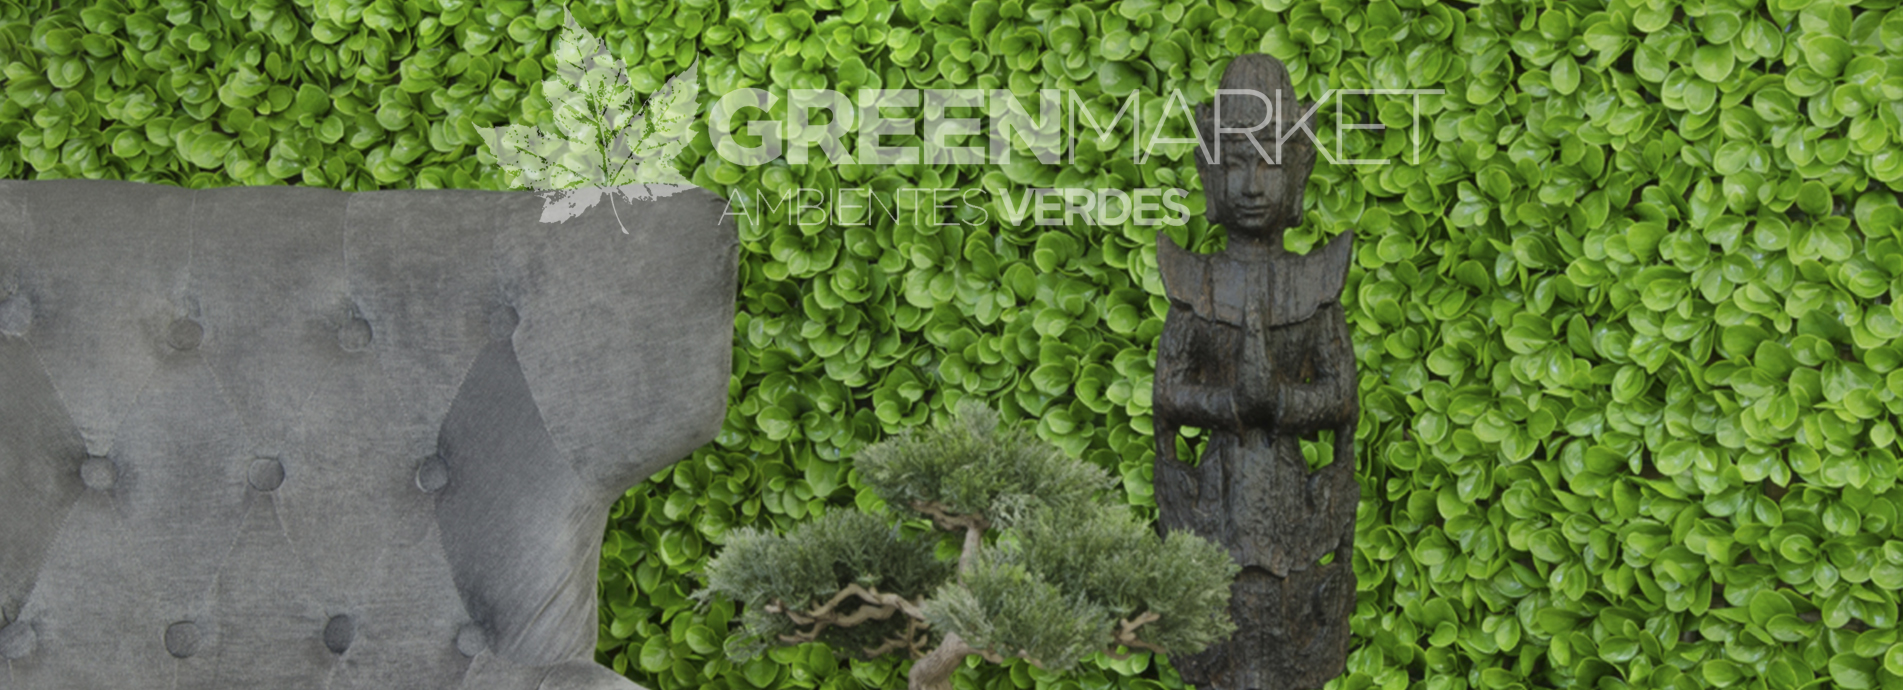 Green Market - Muros Verdes Artificiales